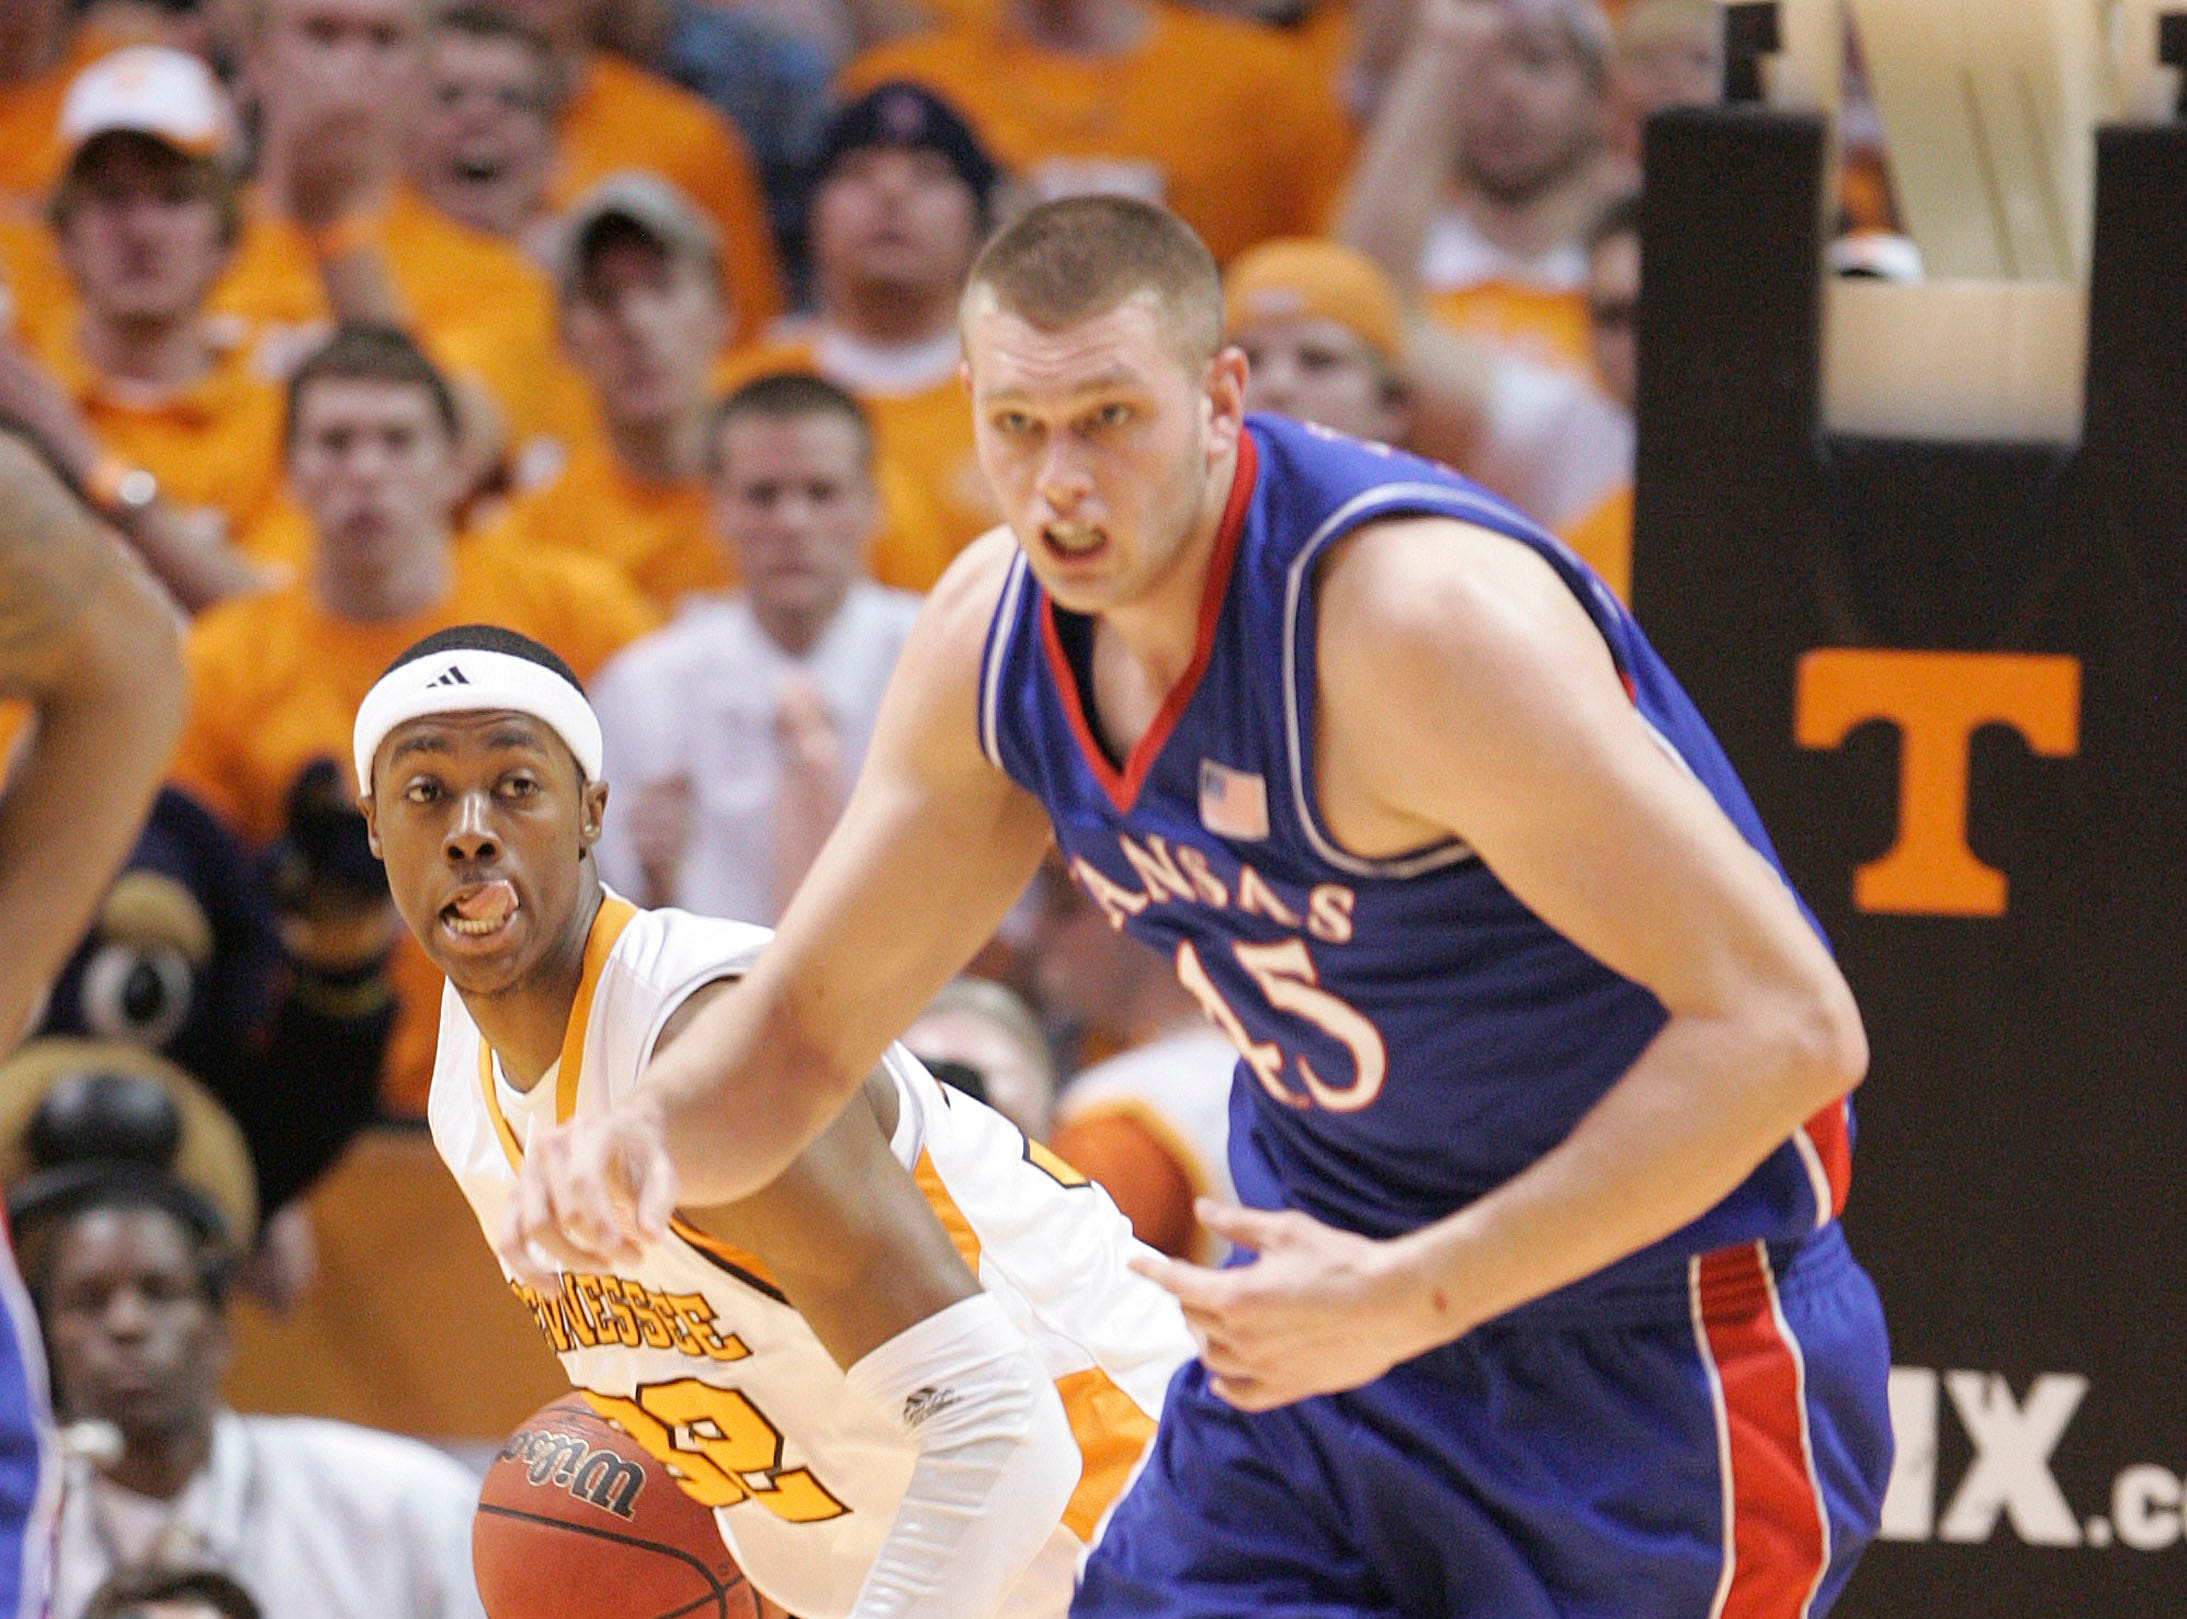 Tennessee's Scotty Hopson (32) rebounds ball against Kansas' Cole Aldrich (45) during the first half of an NCAA college basketball game Sunday, Jan. 10, 2010, in Knoxville, Tenn.